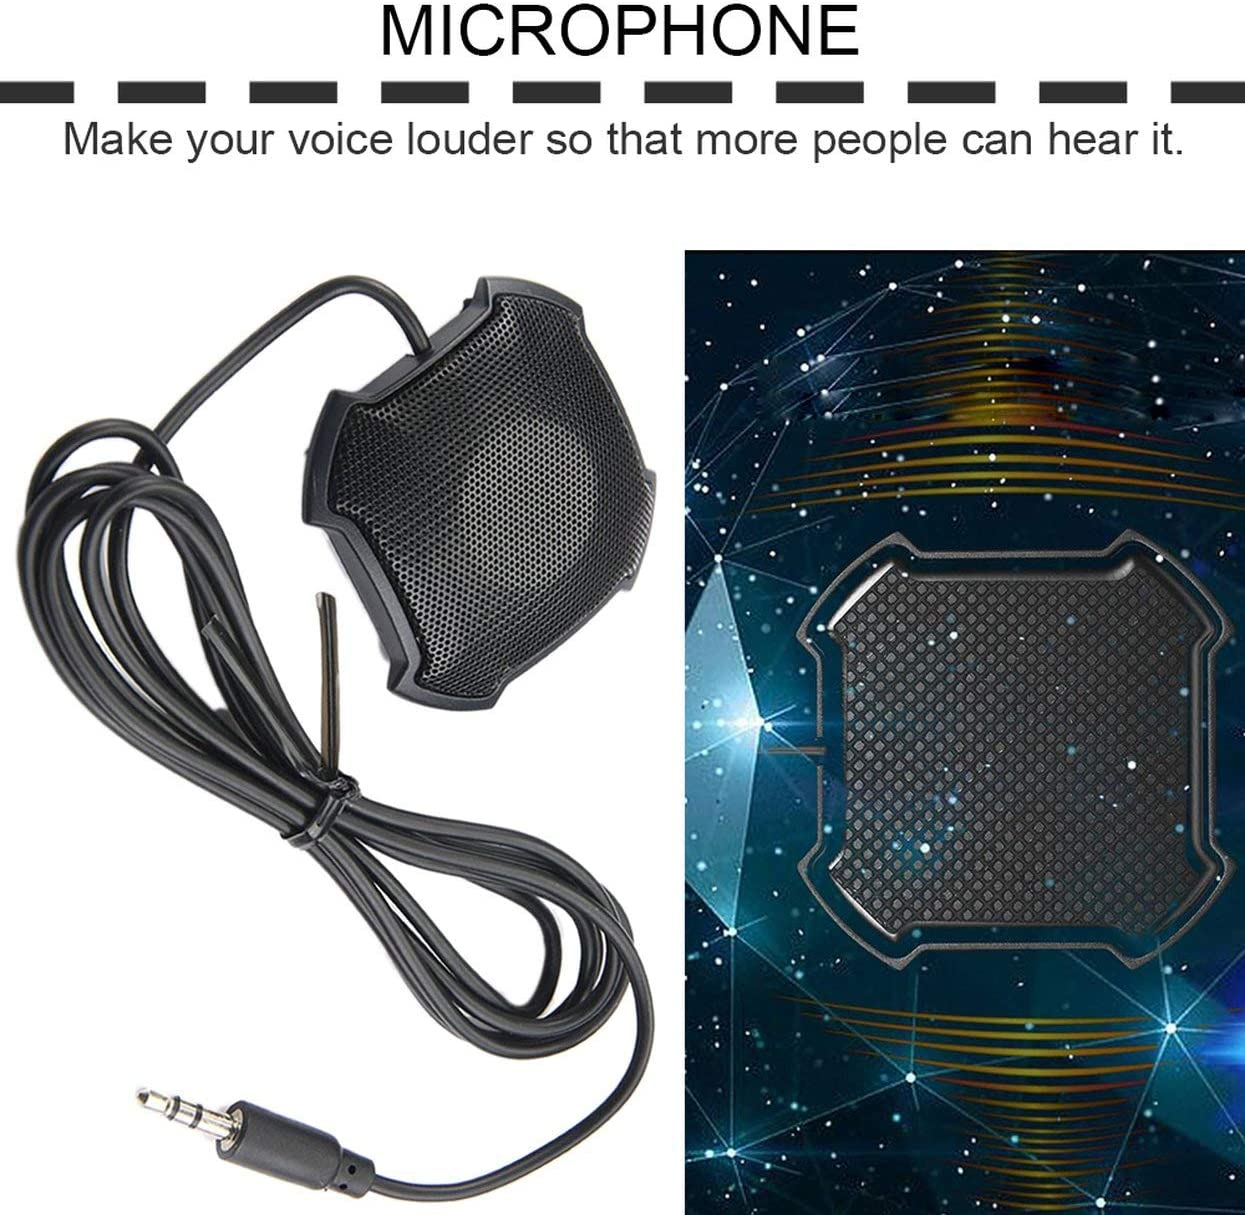 Black Omnidirectional Pickup Mic with 3.5mm Audio Jack Condenser Conference Microphone for Skype VOIP Call Voice Chat